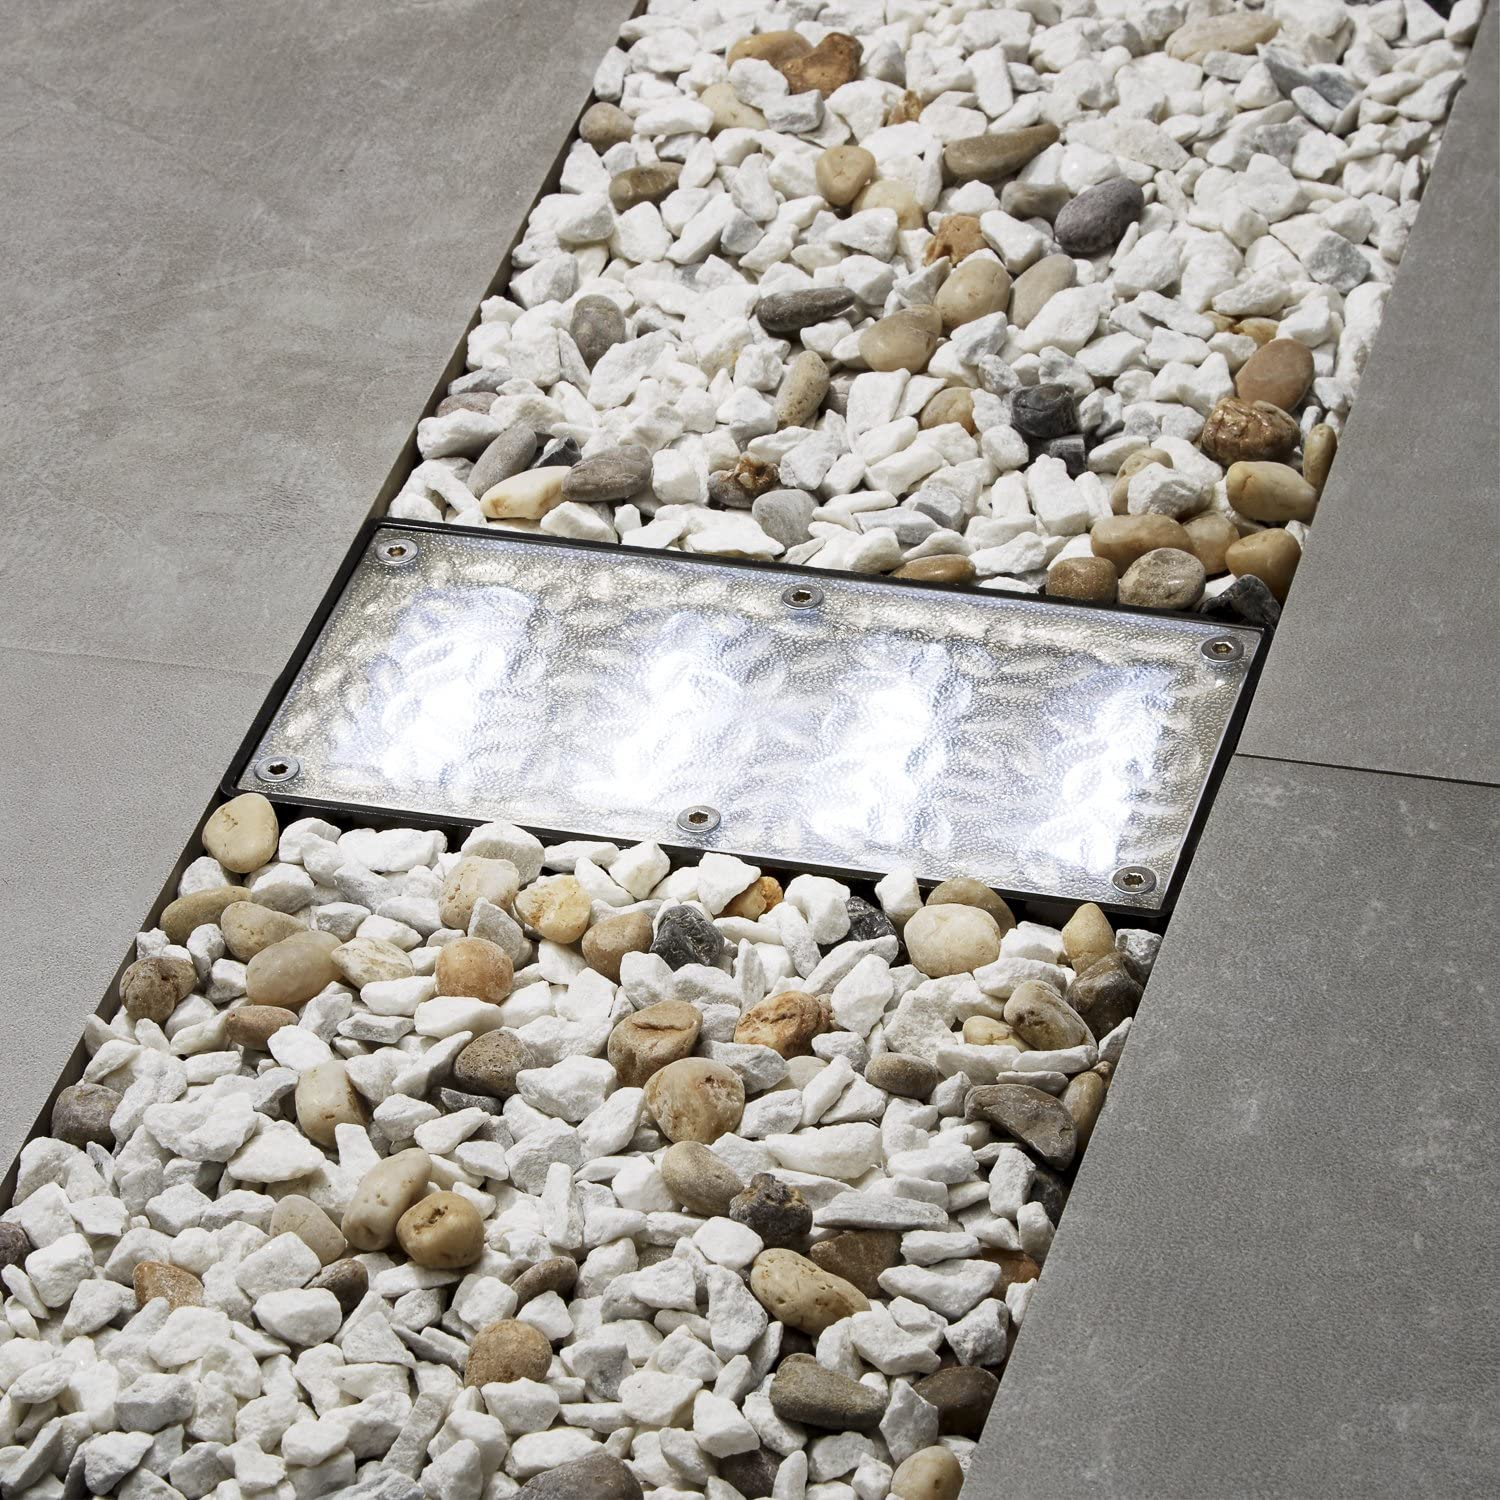 Solar 4 X 8 Recessed Paver Landscape Light With 12 Cool White Leds Amazon Co Uk Garden Outdoors